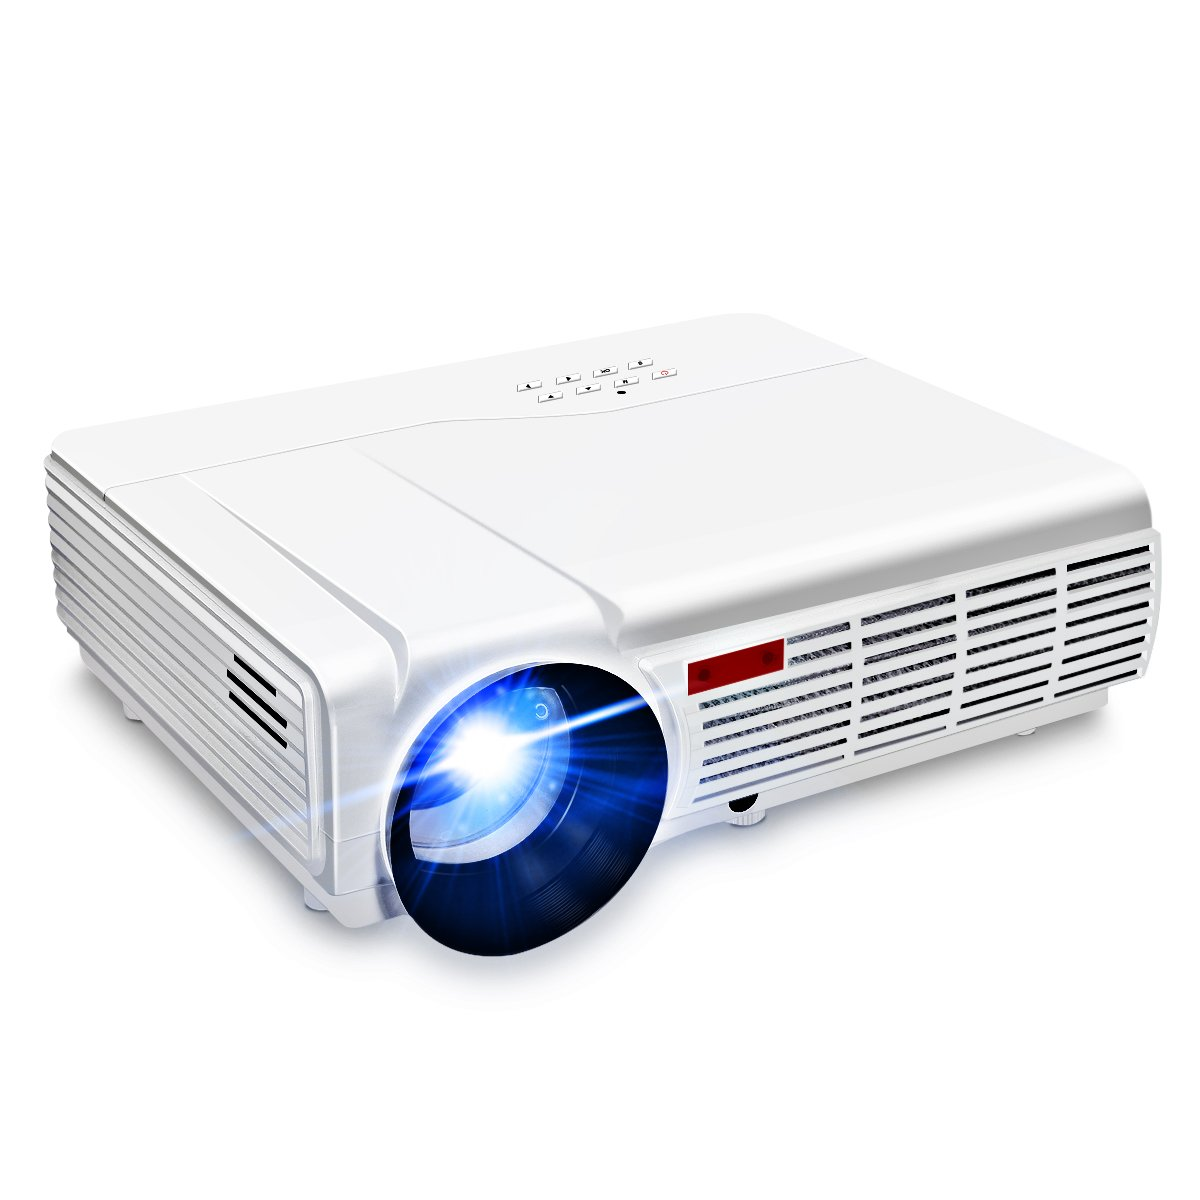 Wifi Projector,ELEGIANT 3000 Lumens Long life LED Full HD LED Home Cinema TV Projector Lcd Multimedia Video Game Projectors Support 1080P USB VGA AV TV Interface